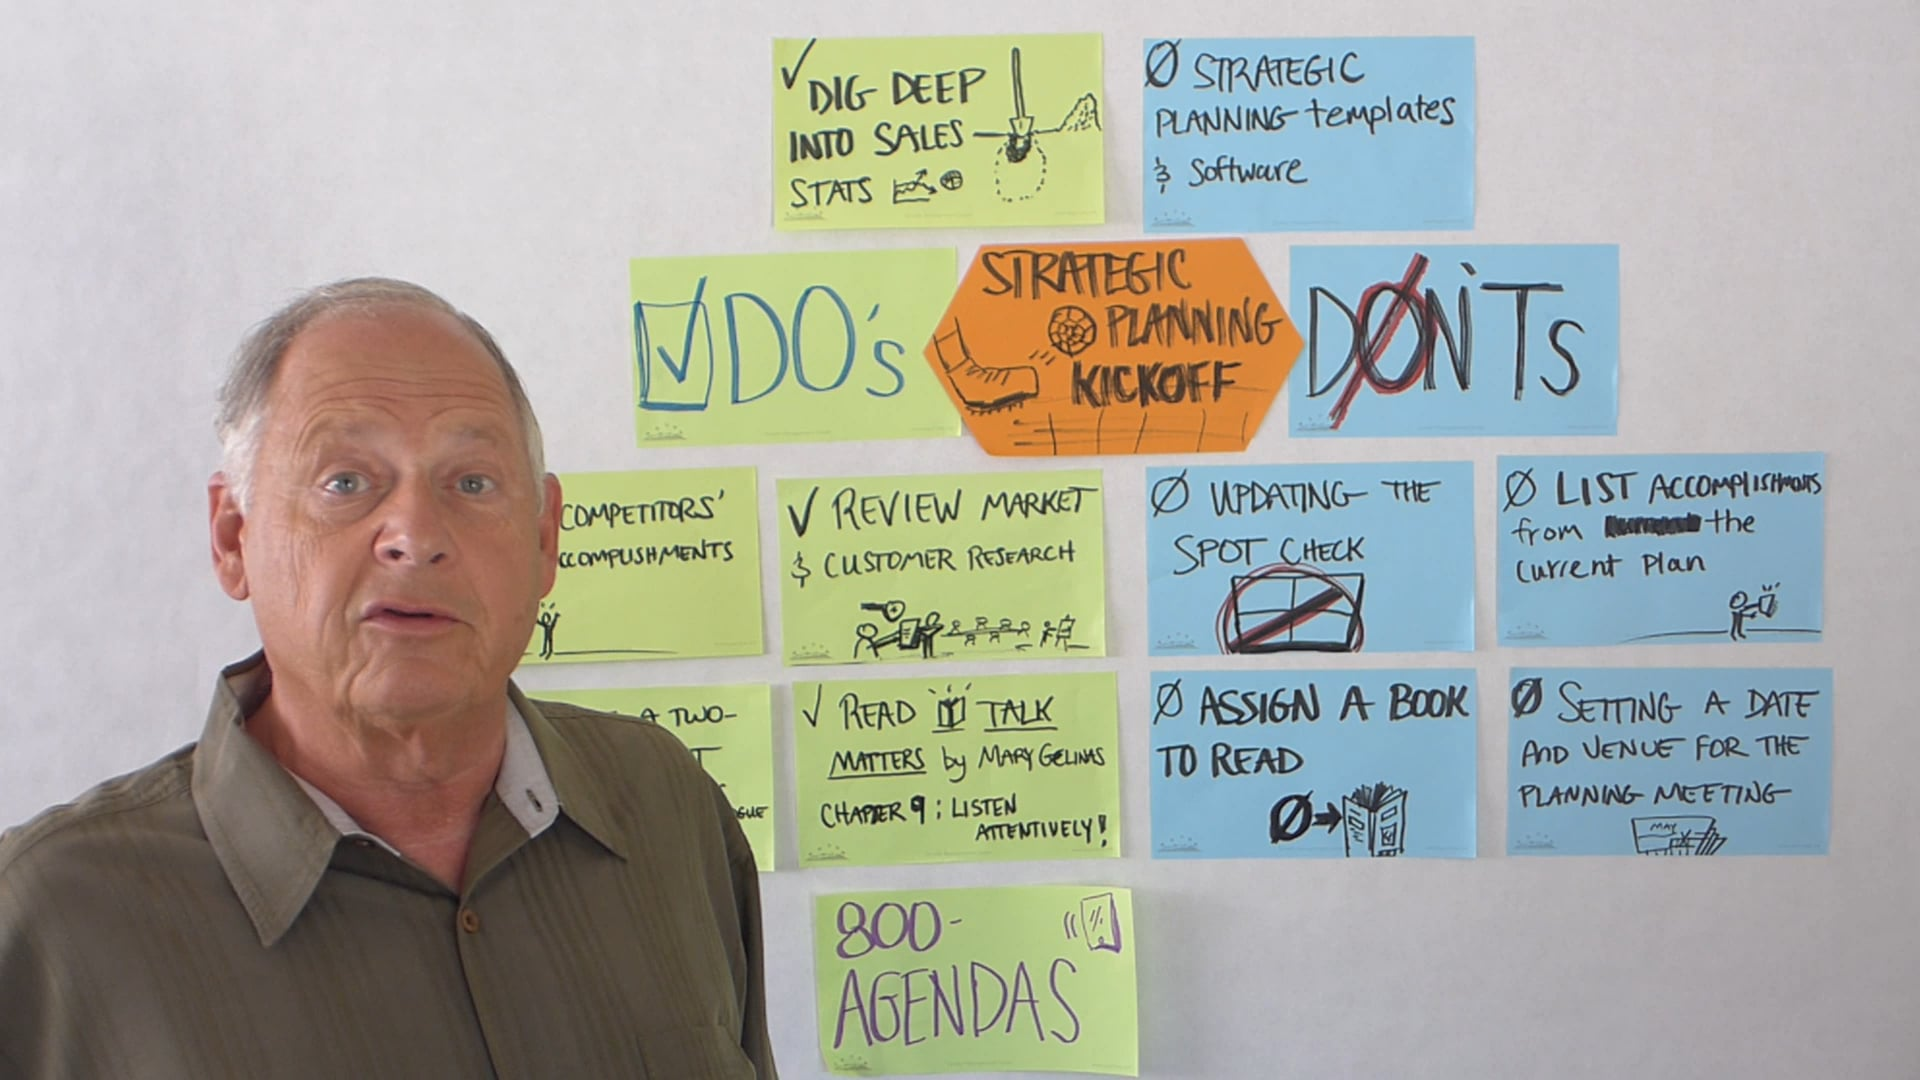 Strategic Planning Kickoff DO's and DONT's